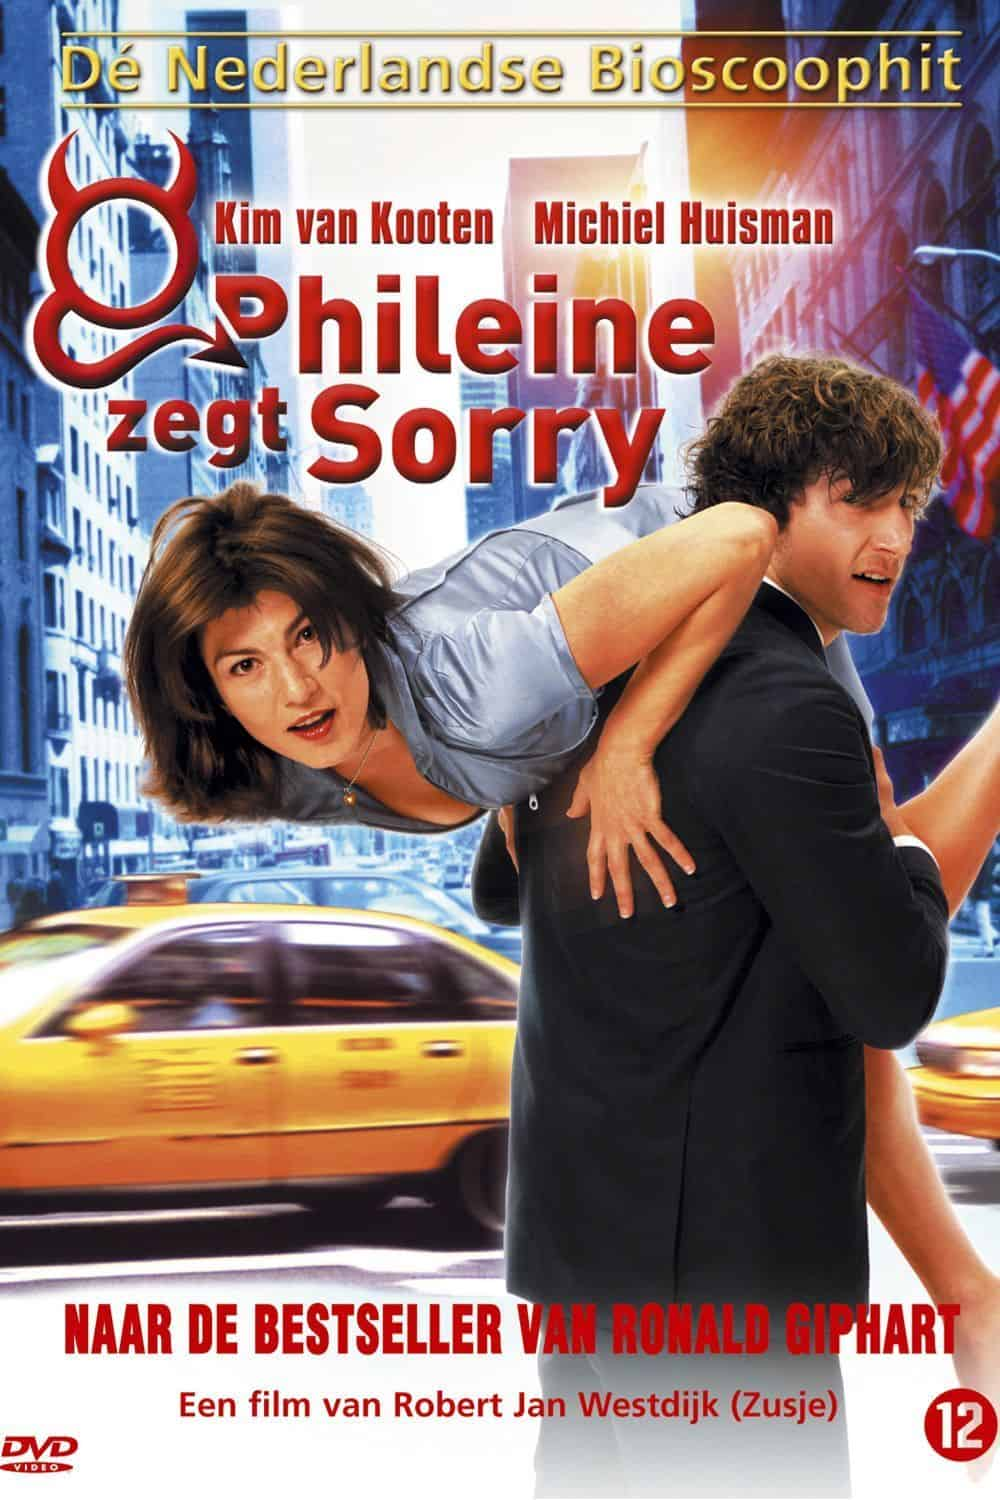 Phileine Says Sorry, 2003